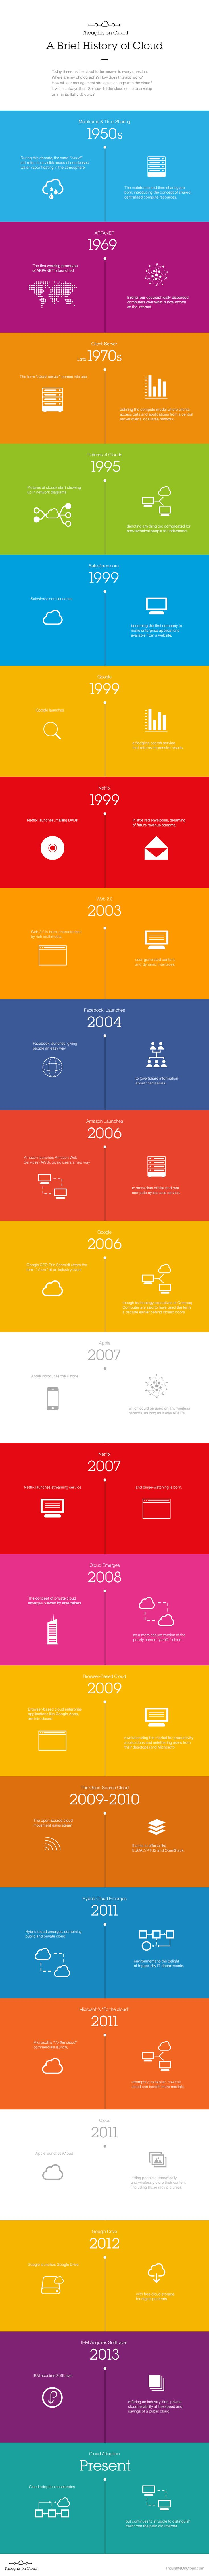 A Brief History of Cloud #infographic #History